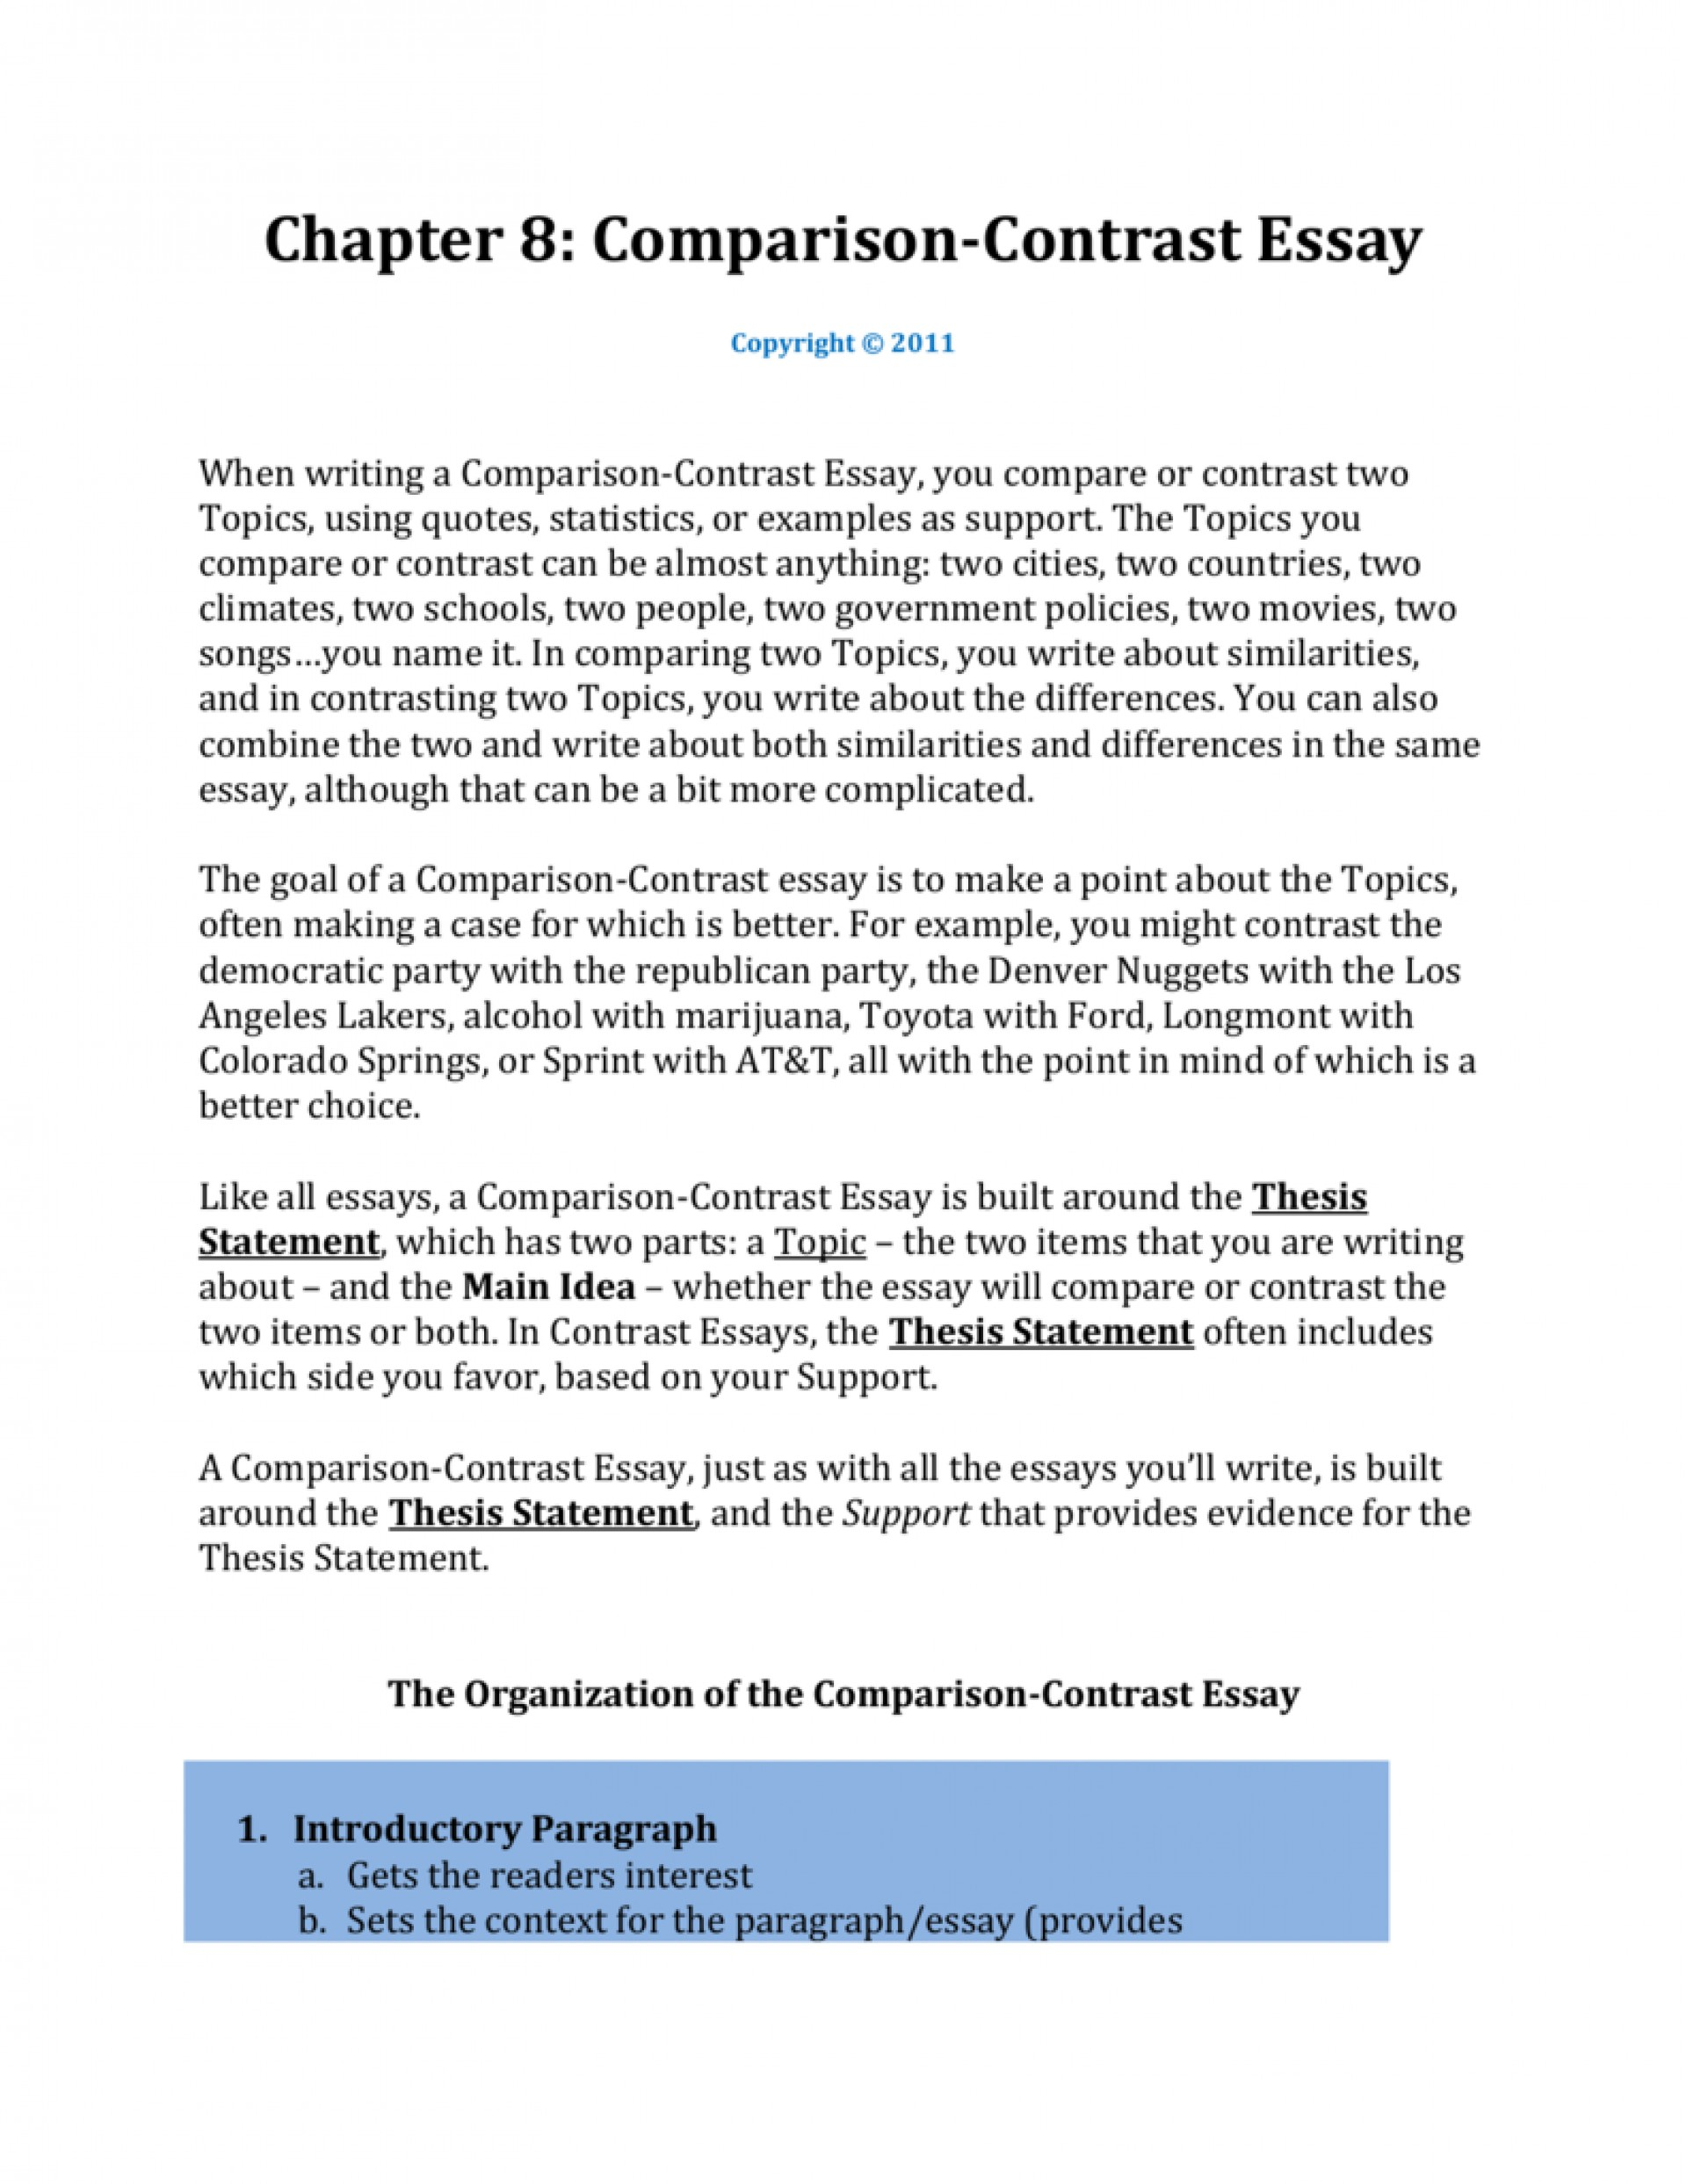 015 How To Conclude Compare And Contrast Essay 007207405 1 Fantastic A Start Writing Comparison Write Begin 1920